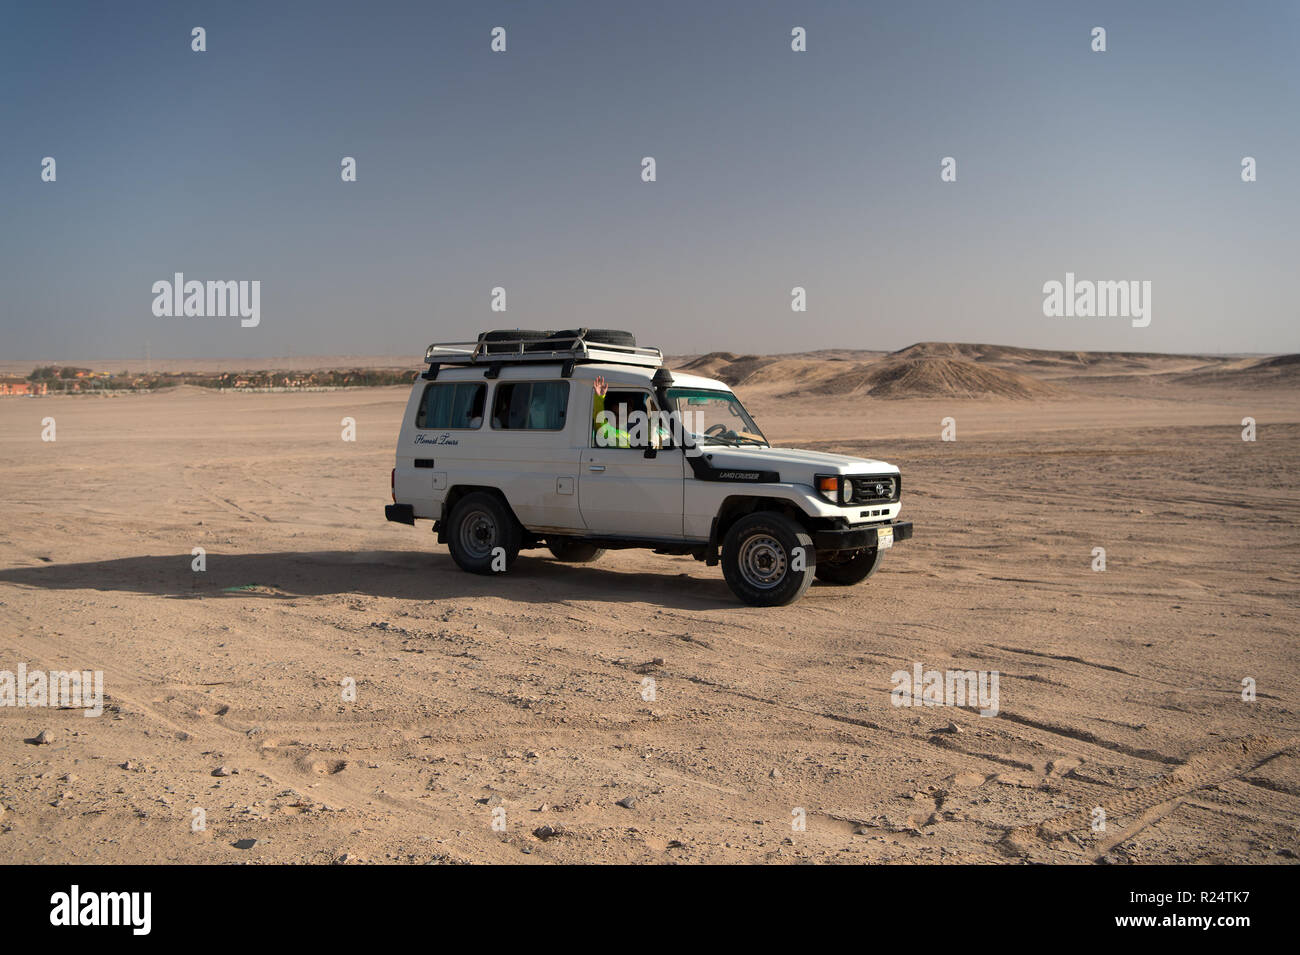 hurghada, Egypt-February 26, 2017: Desert race. Car suv overcomes sand dunes obstacles. Competition racing challenge desert. Offroad vehicle racing obstacles. Car drives offroad with clouds of dust. - Stock Image